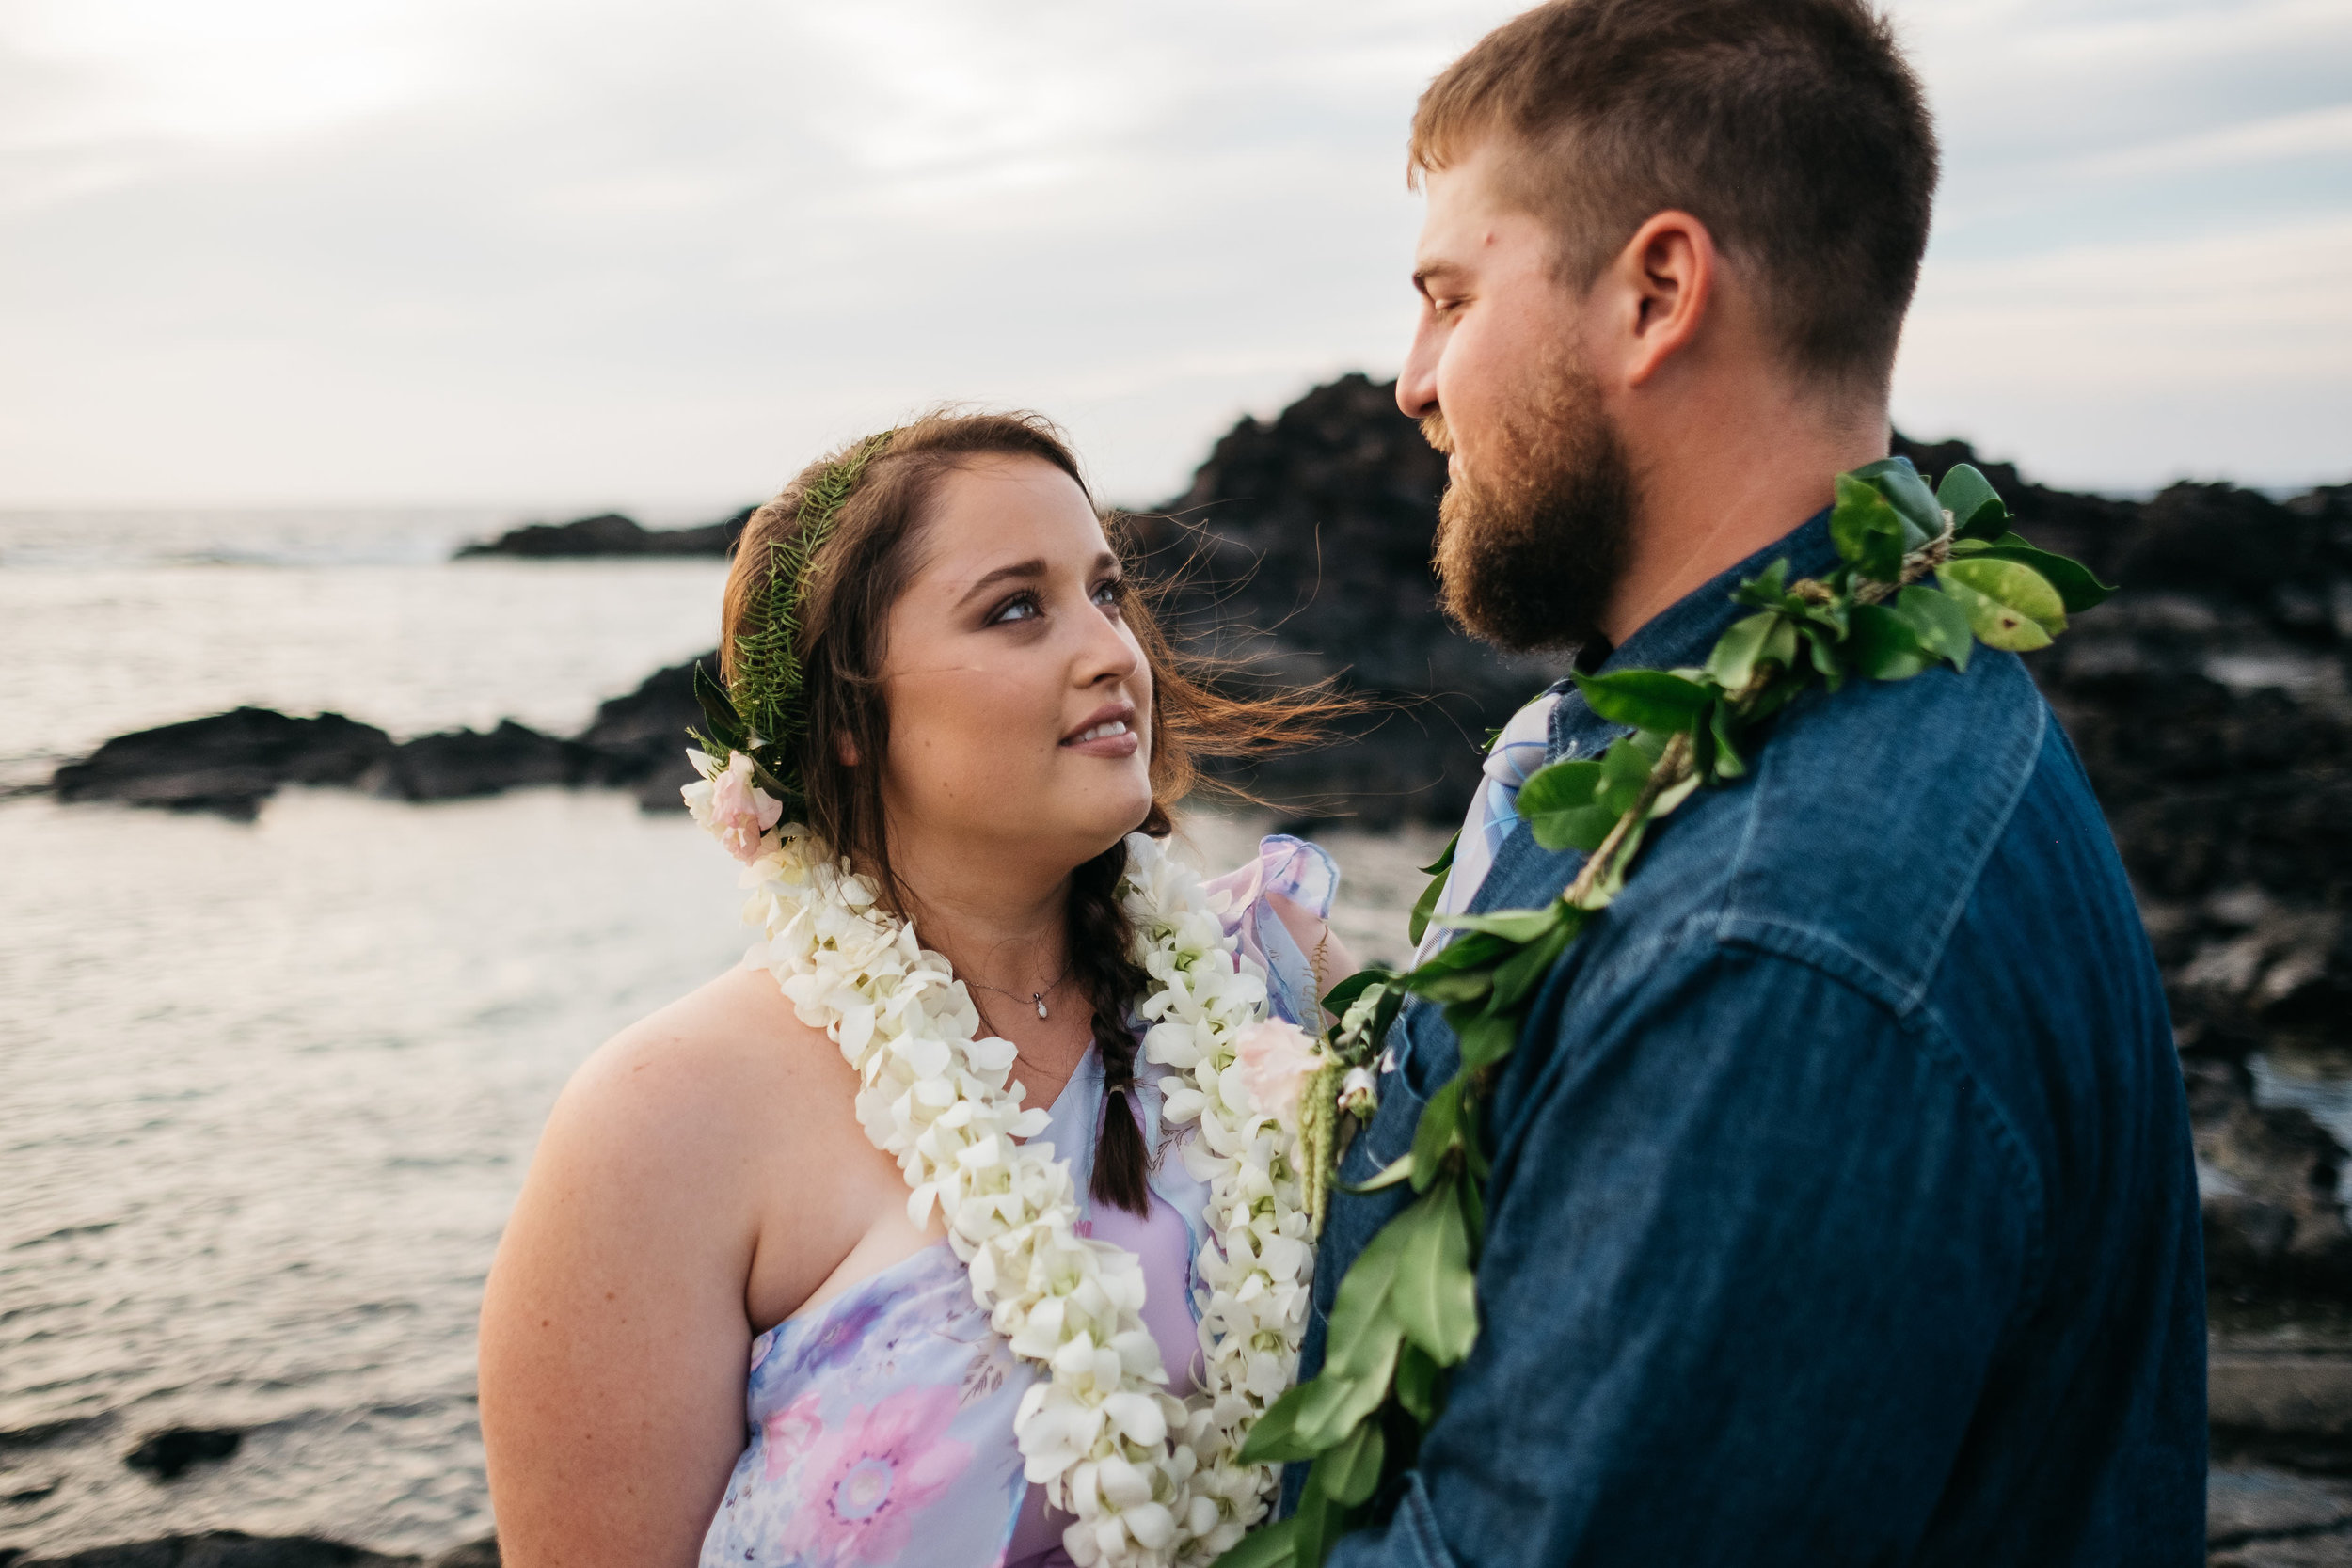 Bride and groom share an intimate moment after their wedding in Hawaii.